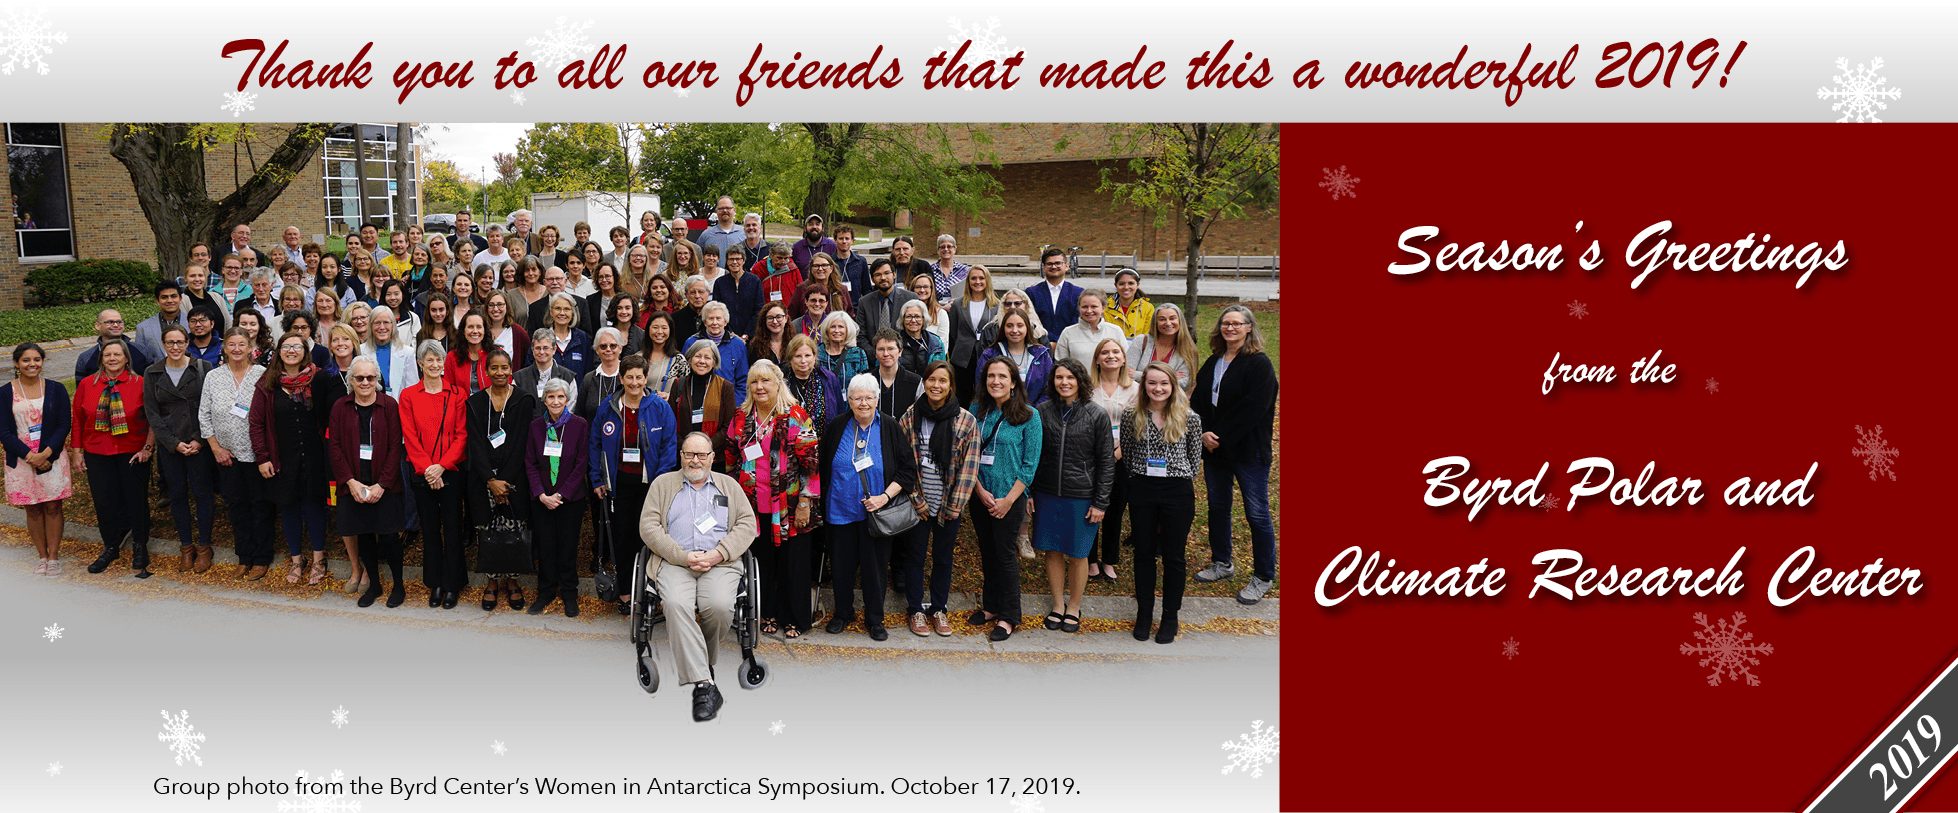 2019 Holiday Card (front)